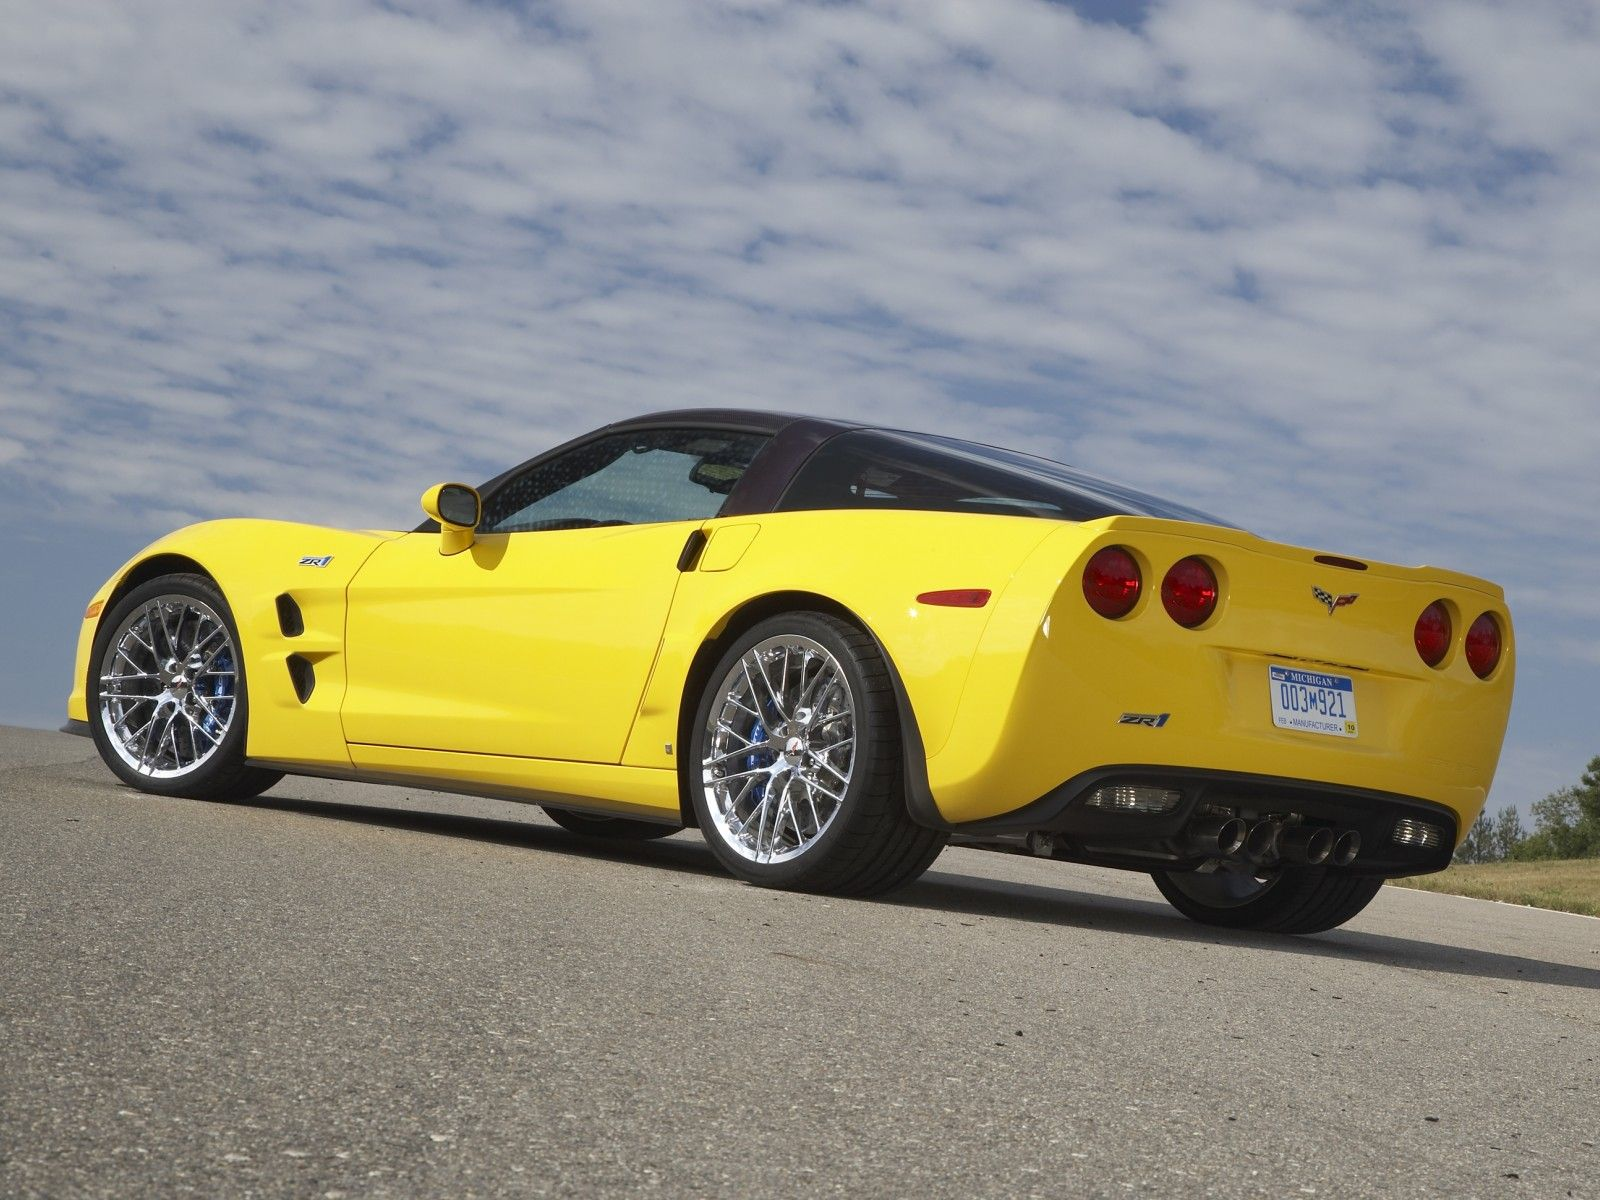 Corvette Zr1 2009 Yellow With Images Corvette Zr1 Chevrolet Corvette Corvette